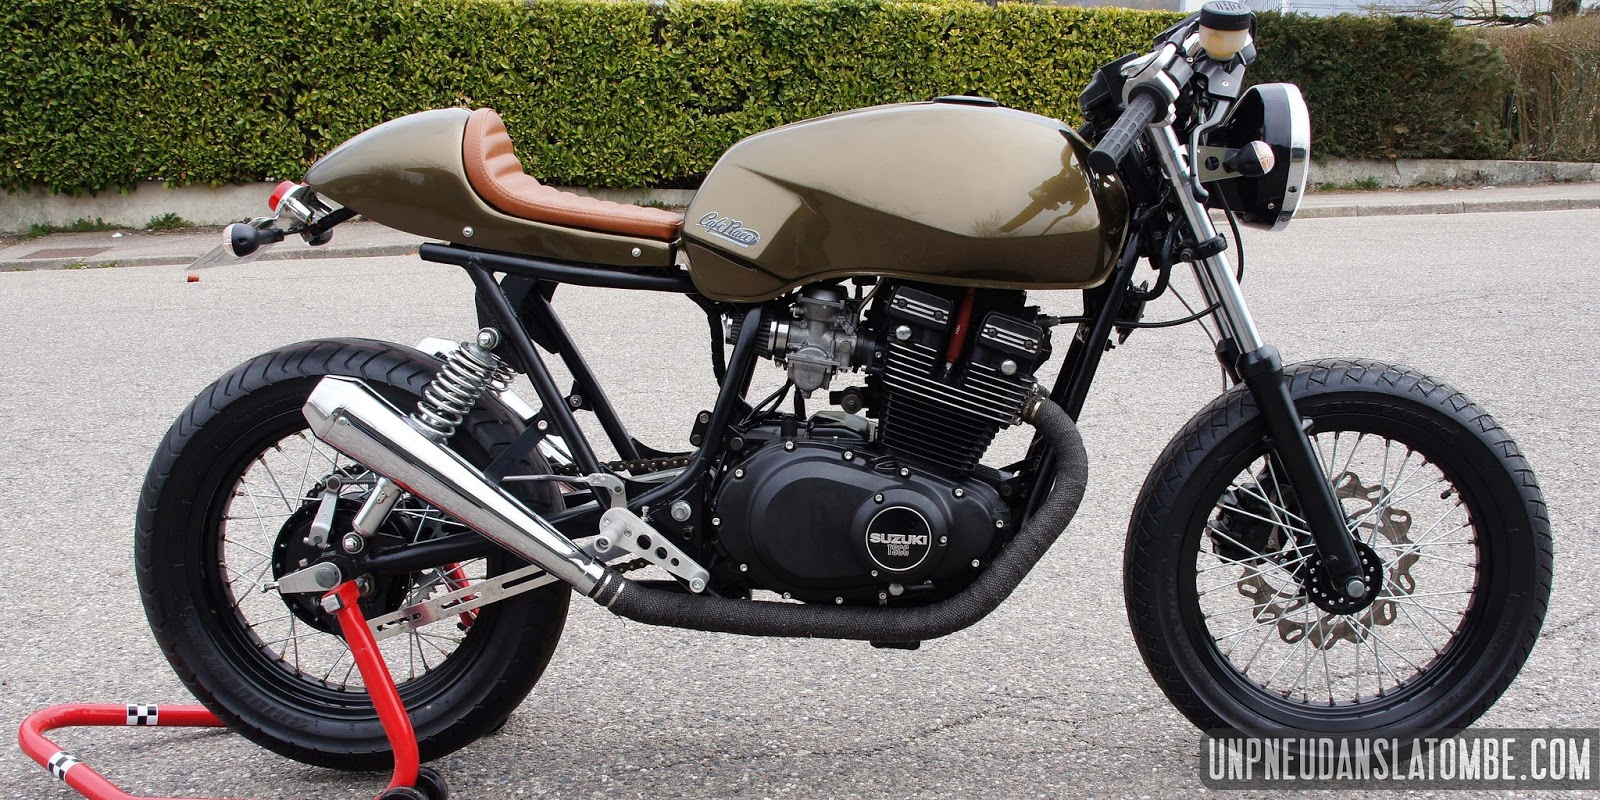 gary's suzuki gsx400 cafe racer - way2speed